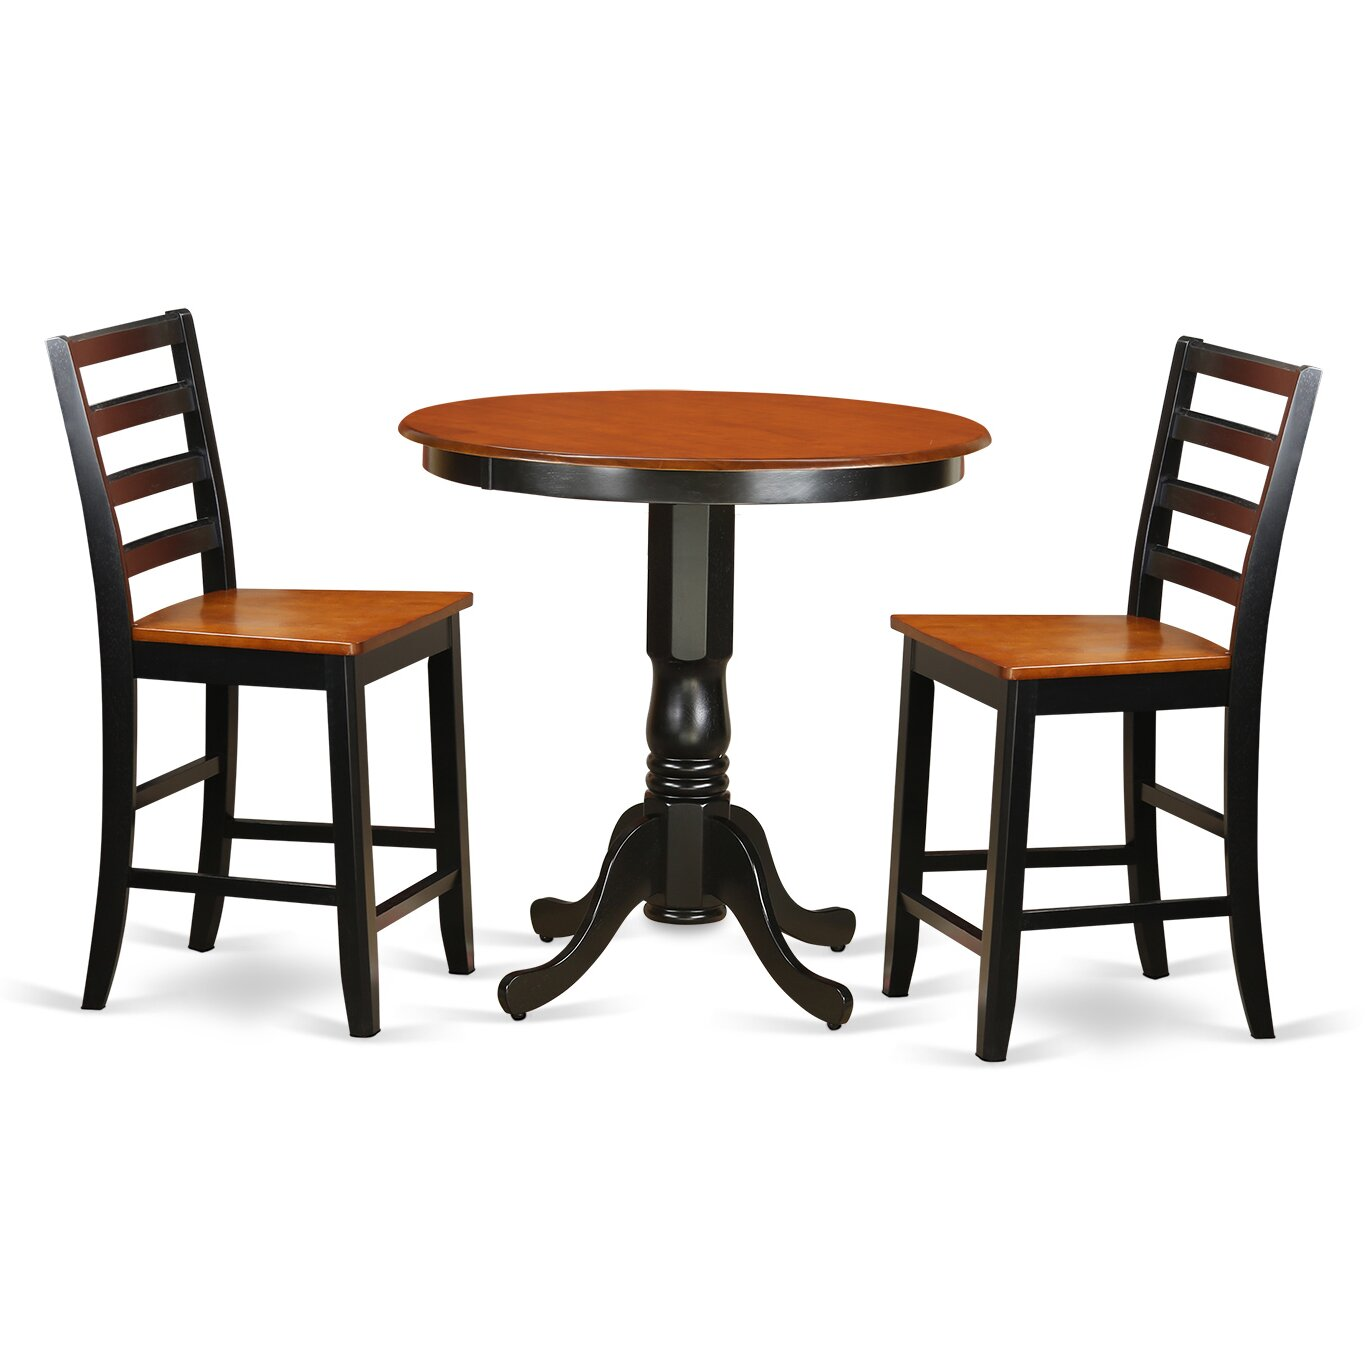 Wooden Importers Jackson 3 Piece Counter Height Pub Table  : 3 Piece Counter Height Table and Chair Set Pub Table and 2 Dining Room Chairs JAFA3 BLK W from www.wayfair.com size 1370 x 1370 jpeg 150kB